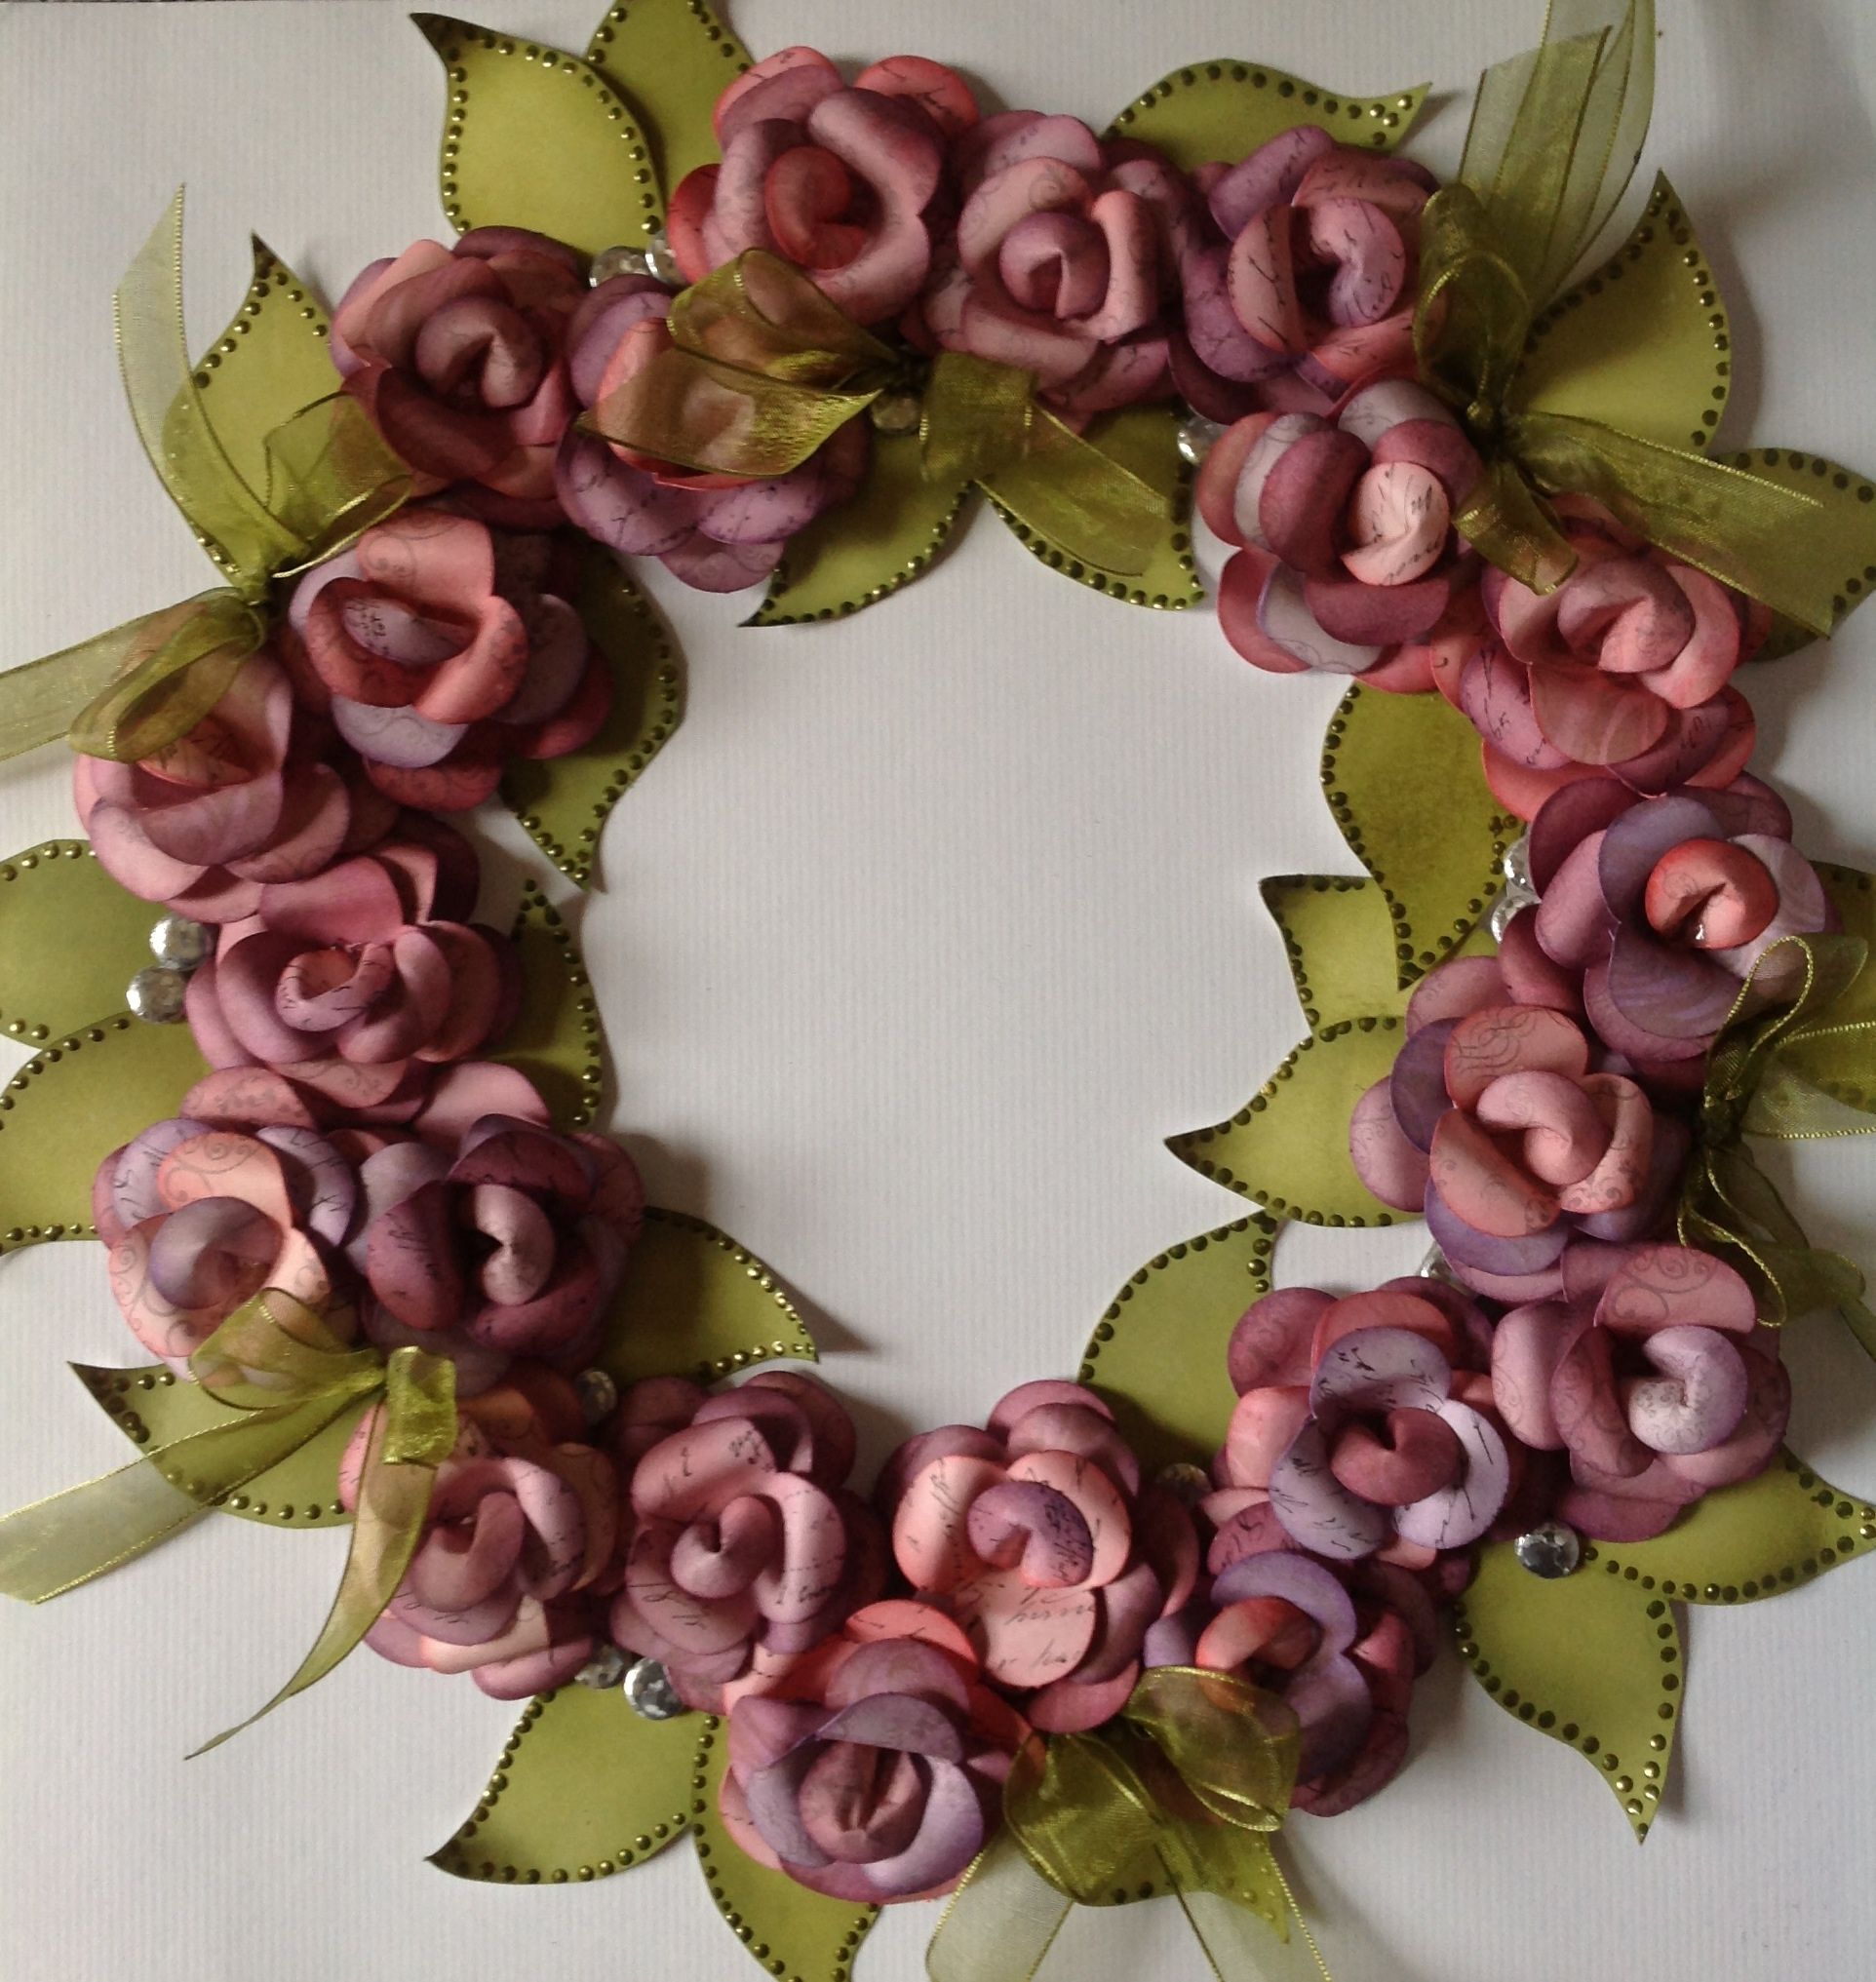 Wreath Created Using Christmas Rose Kit Petals Inked To Add